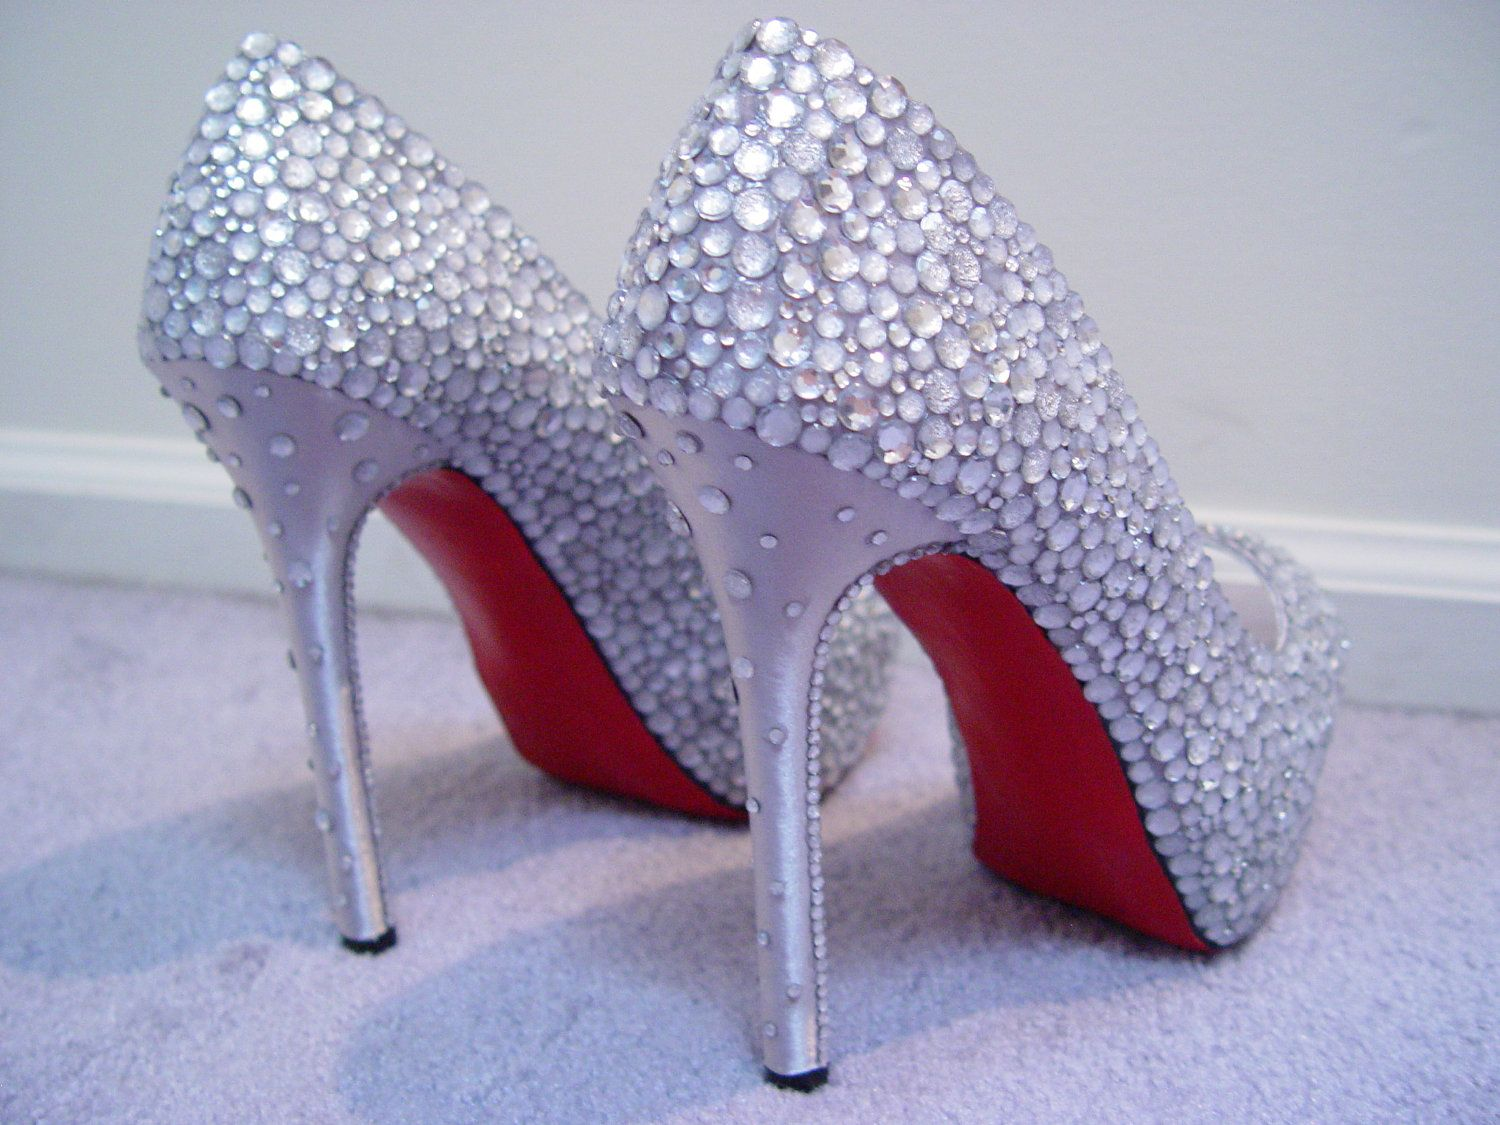 ff22d6a37d OHHH MYYYYY Hand Made Womens Christian Louboutin Style Rhinestone High Heel  Shoes W Red Painted Bottoms. $169.00, via Etsy.